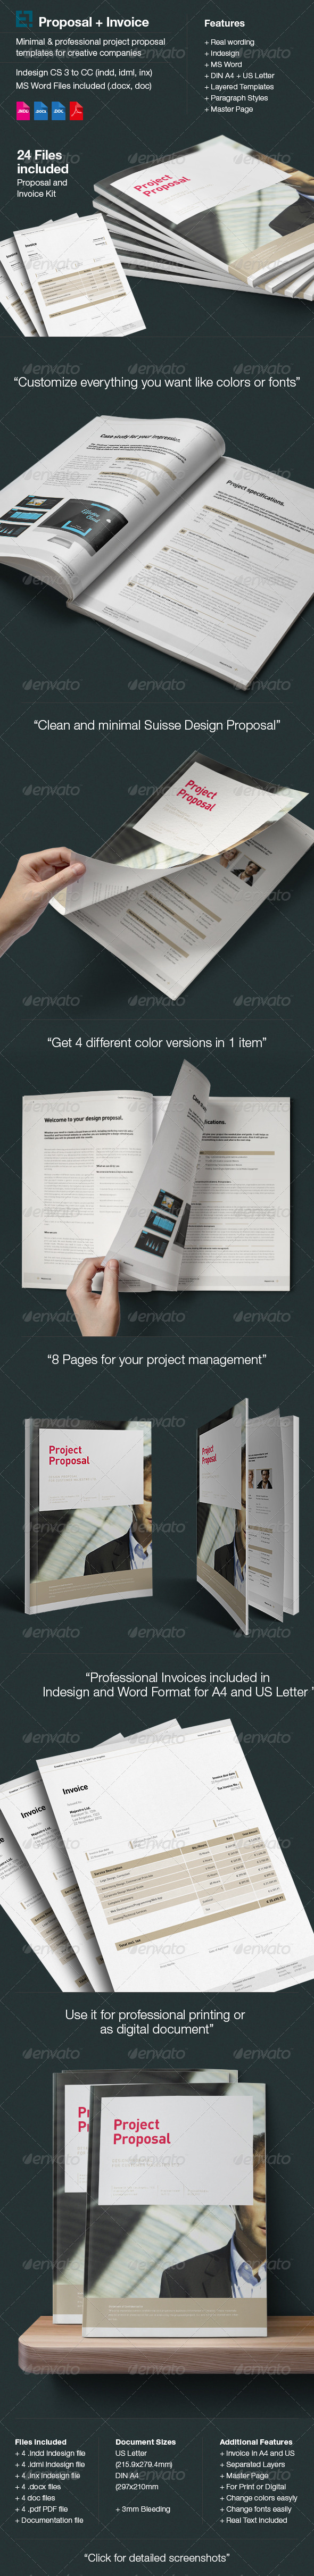 GraphicRiver Proposal and Invoice Kit 6166556